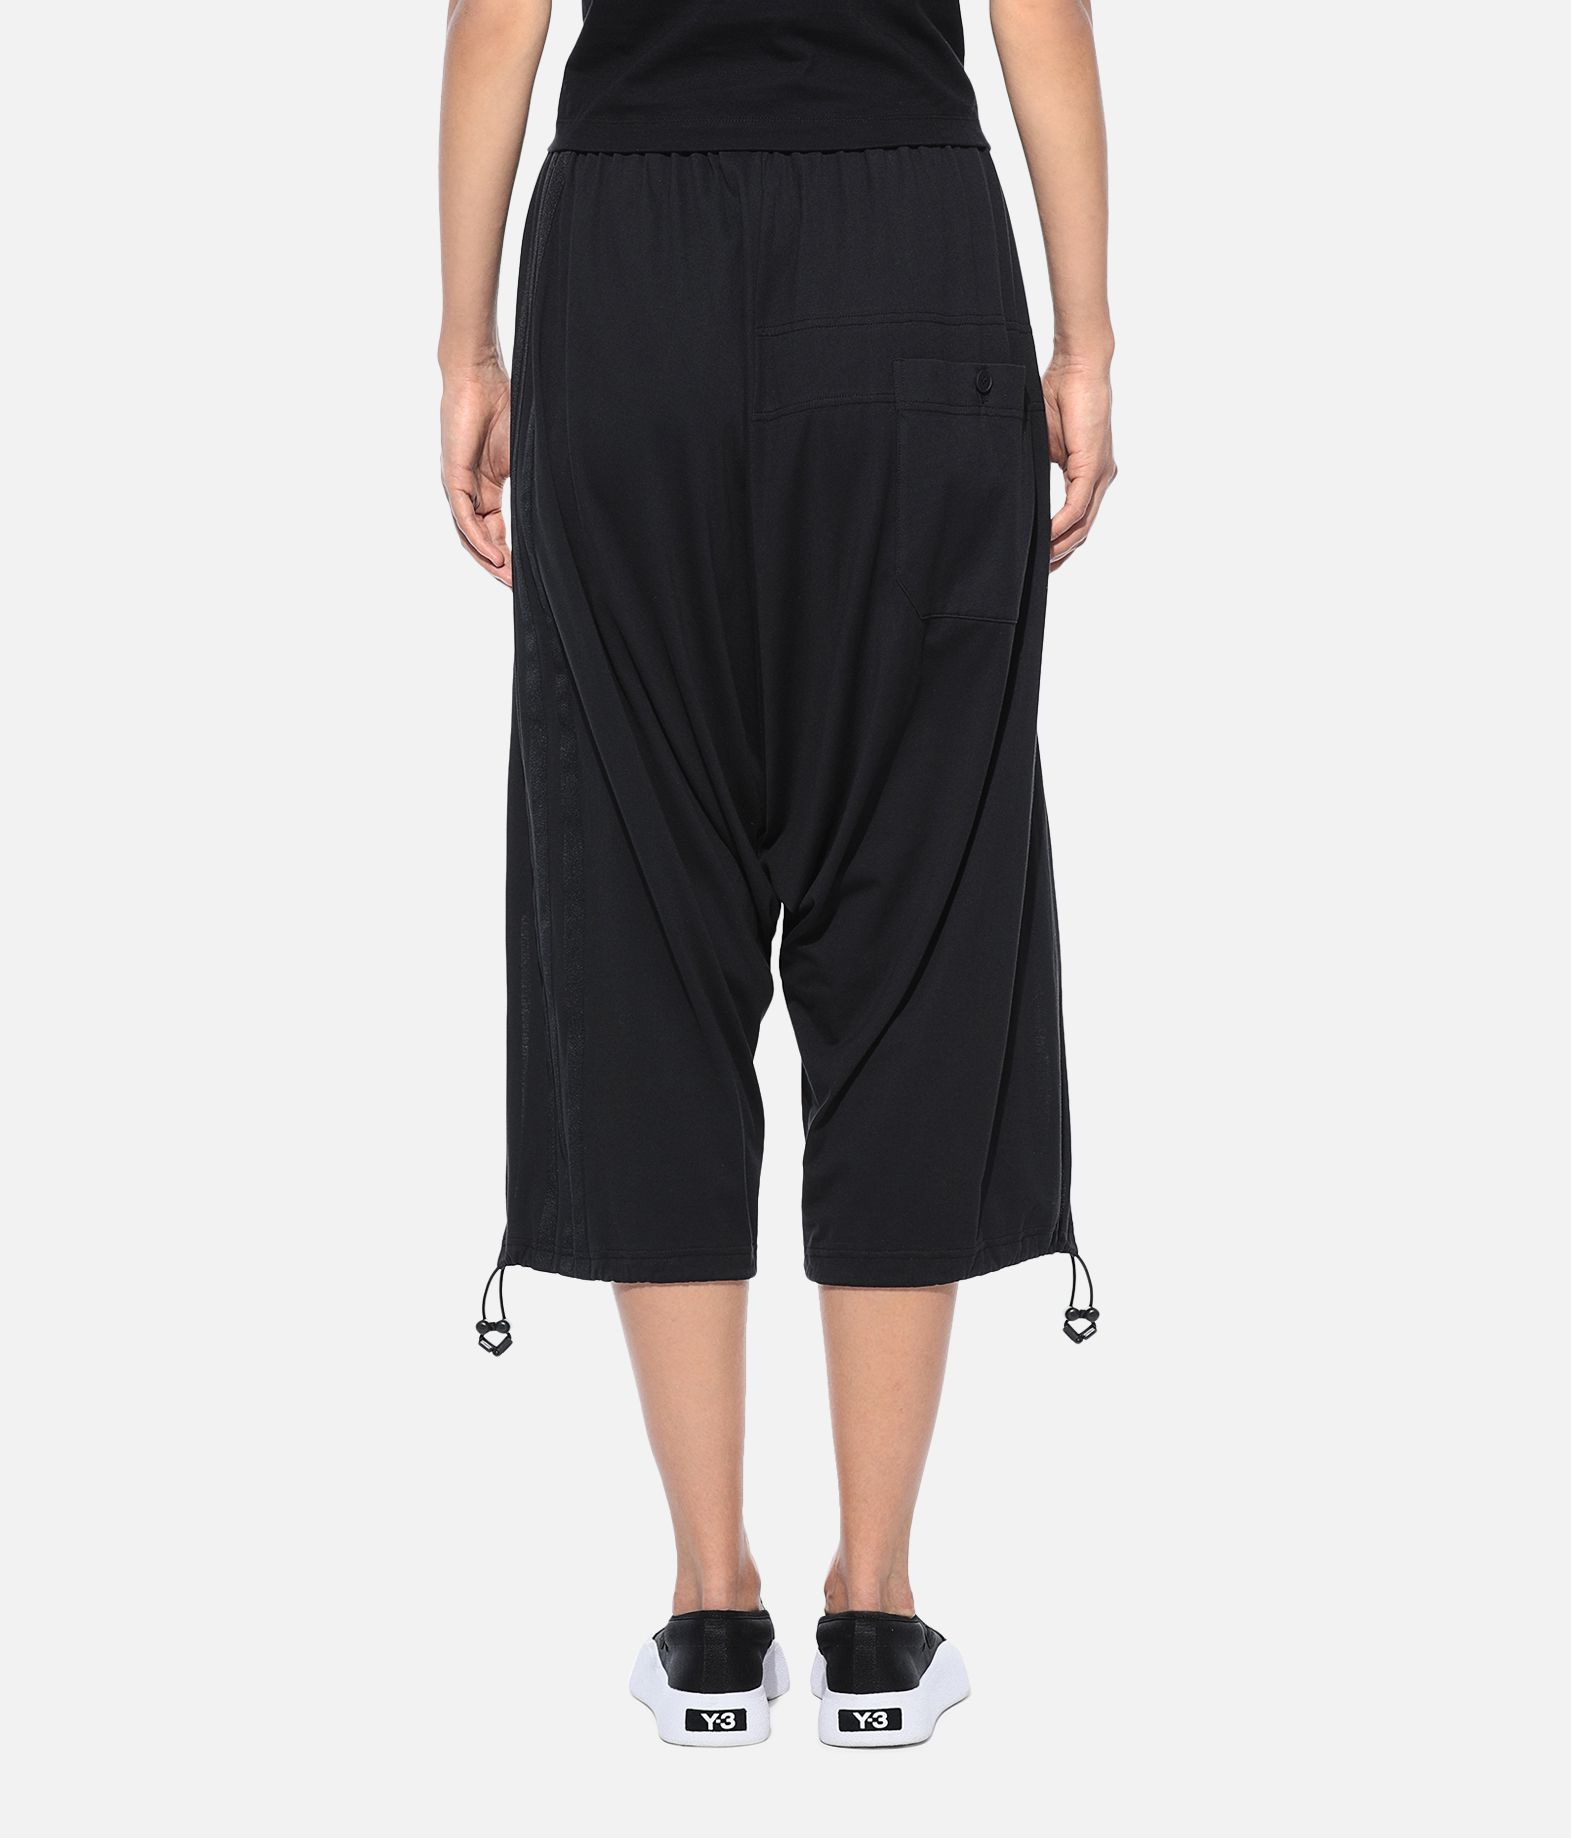 Y-3 Y-3 Drawstring 3/4 Pants  Cropped pant Woman d